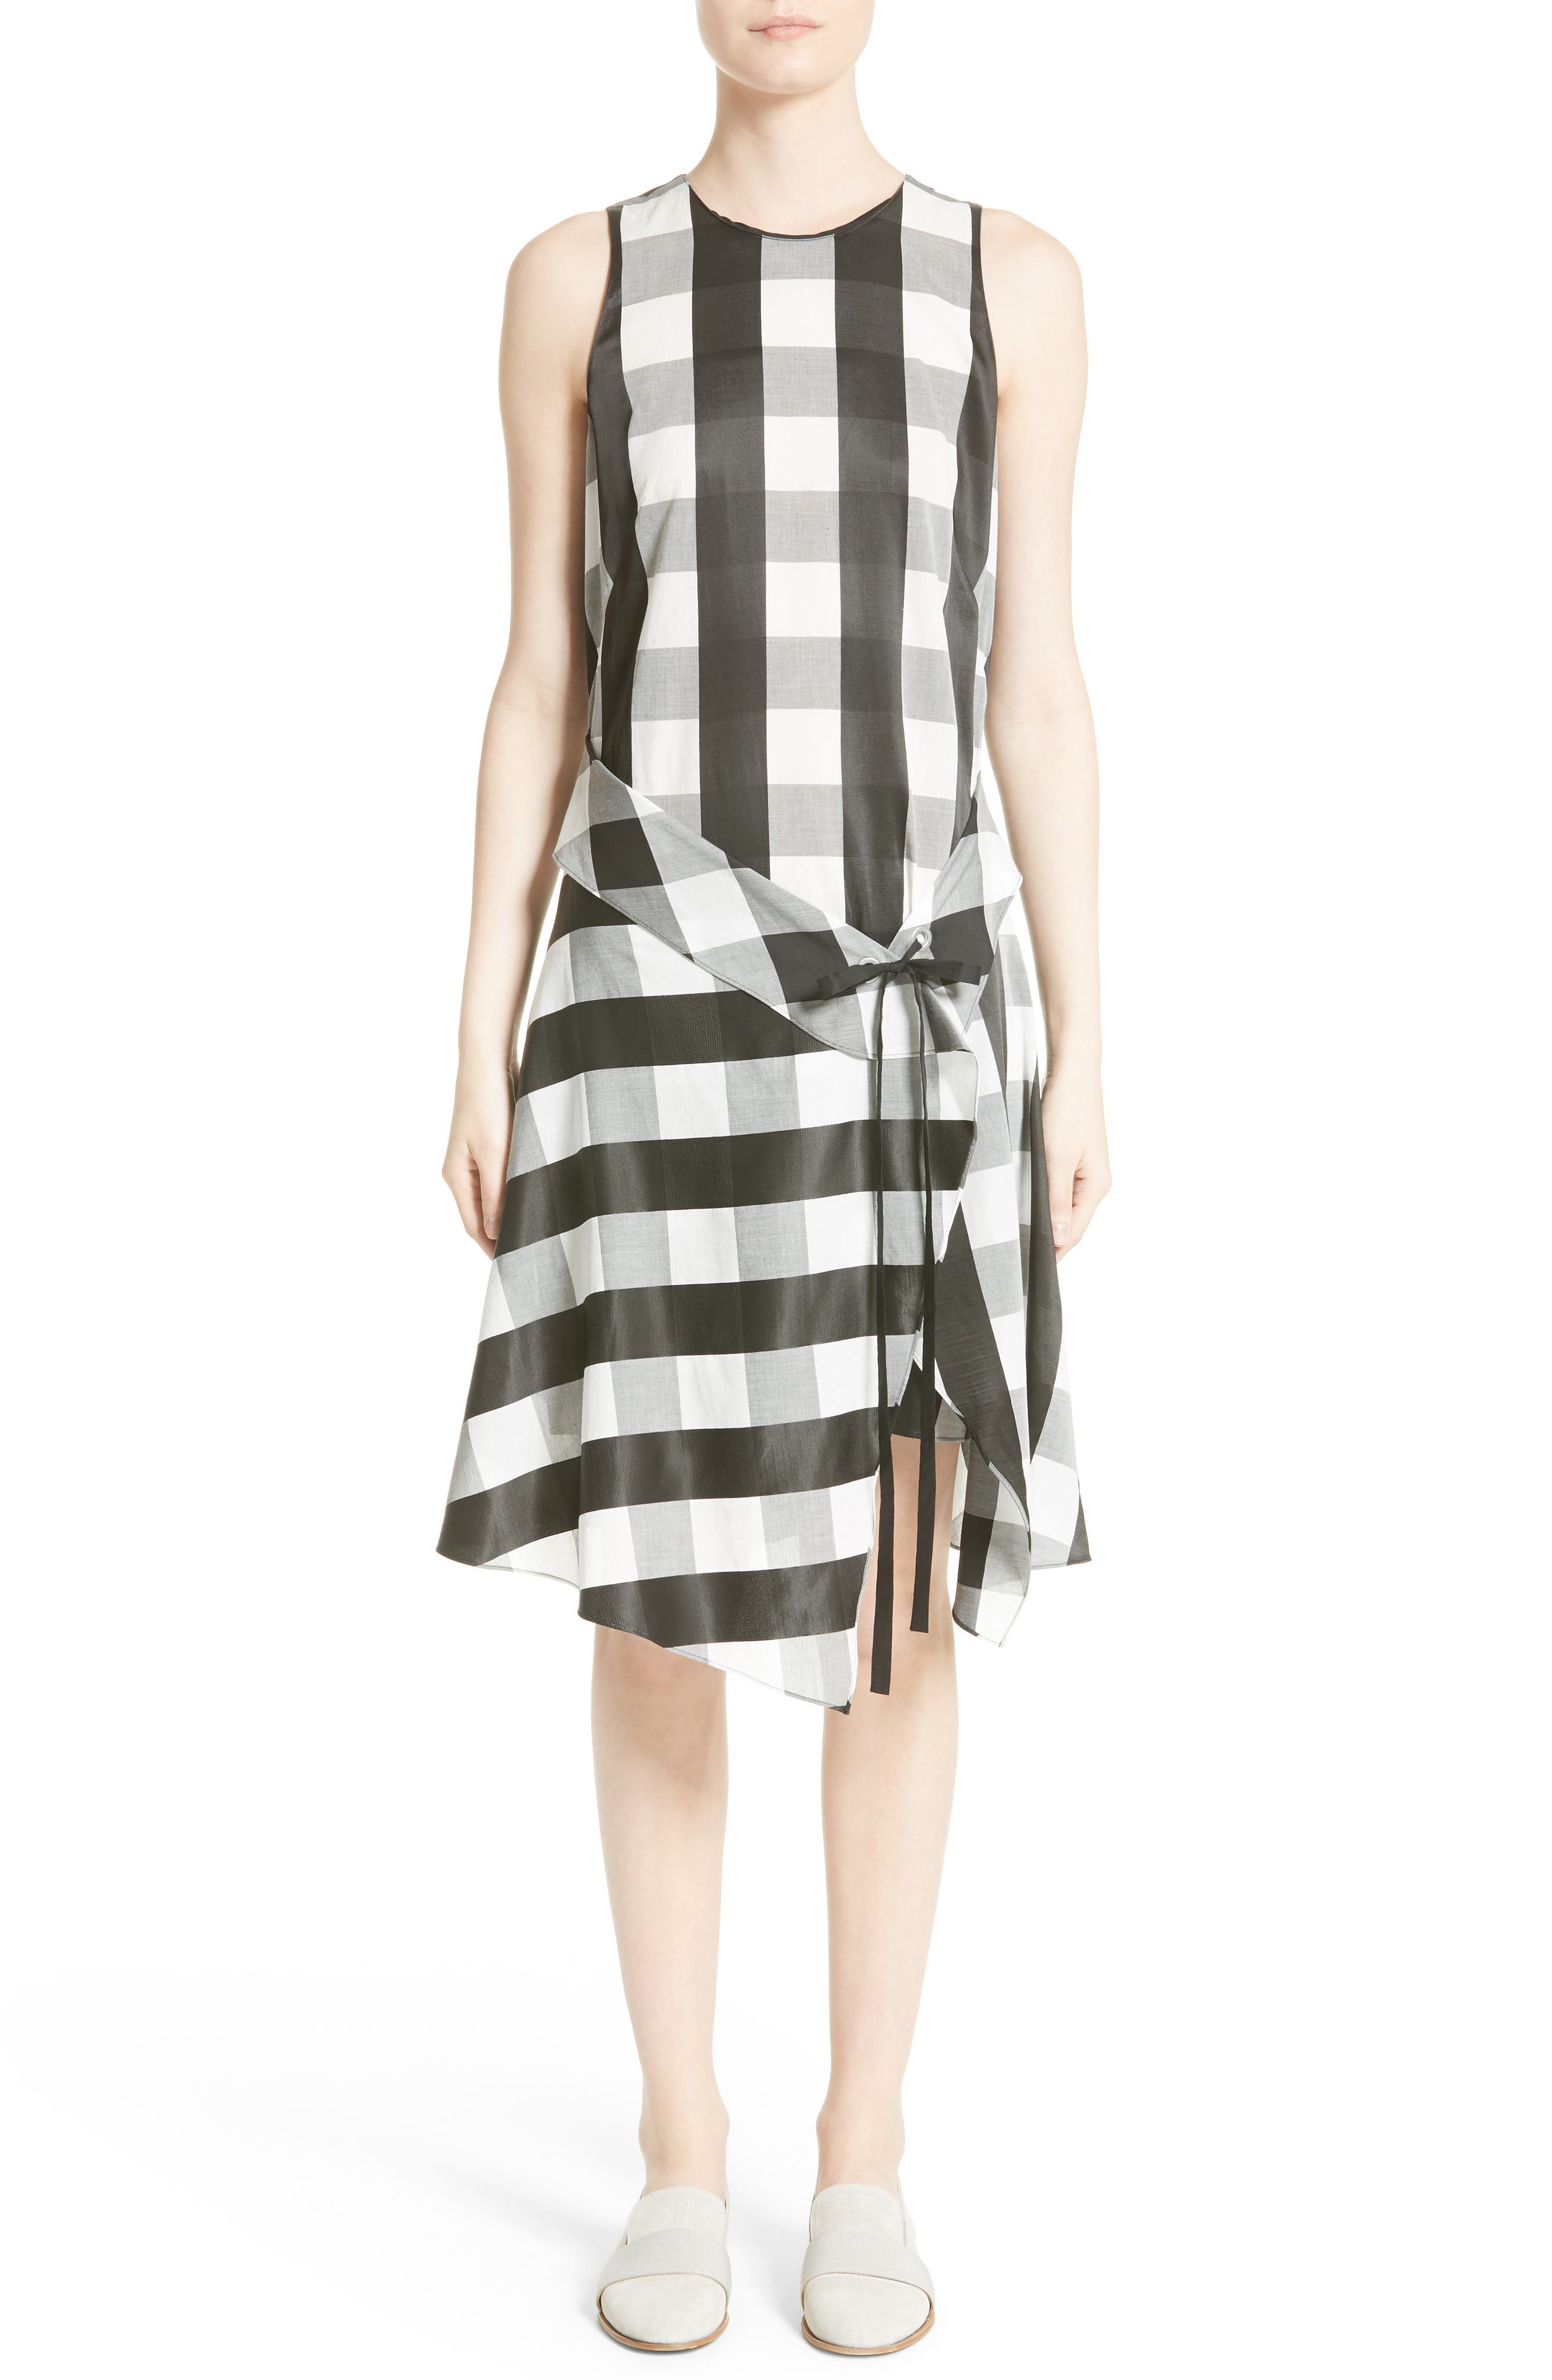 Brighton Asymmetrical Dress,                             Alternate thumbnail 5, color,                             Black/ White